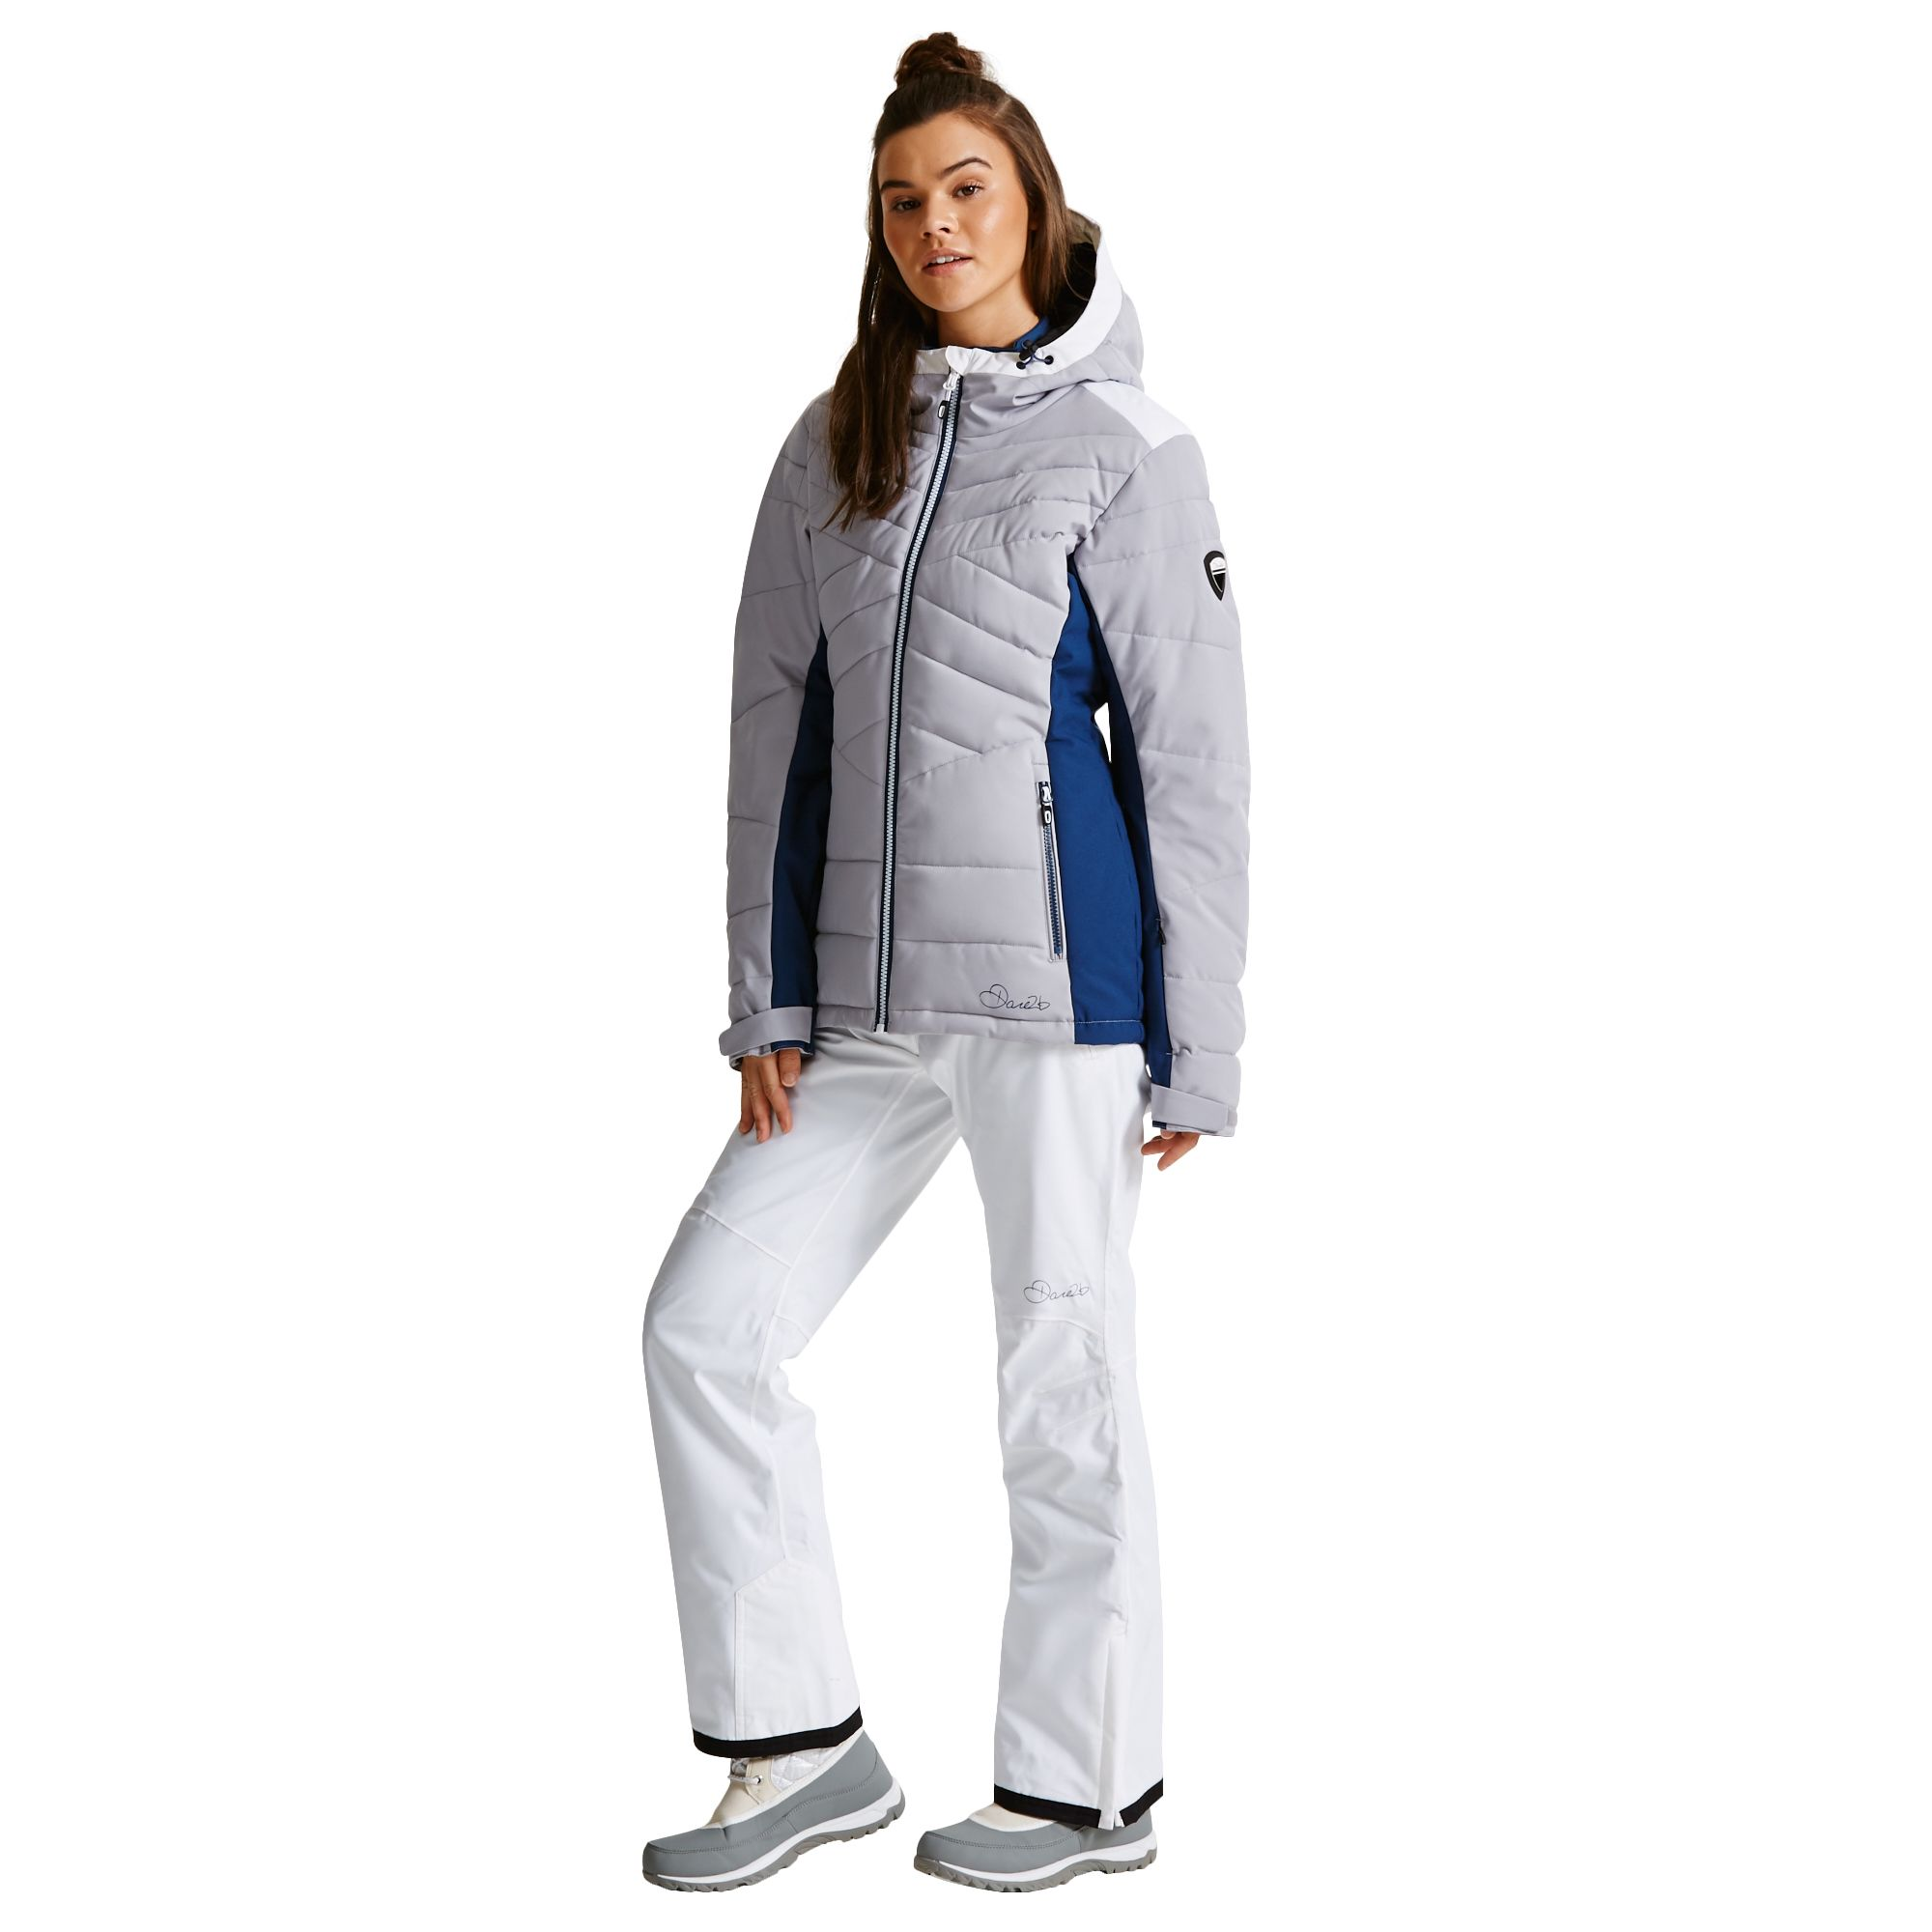 de5e4a59df Dare2b Illation II Ski Jacket Womens - Run Charlie